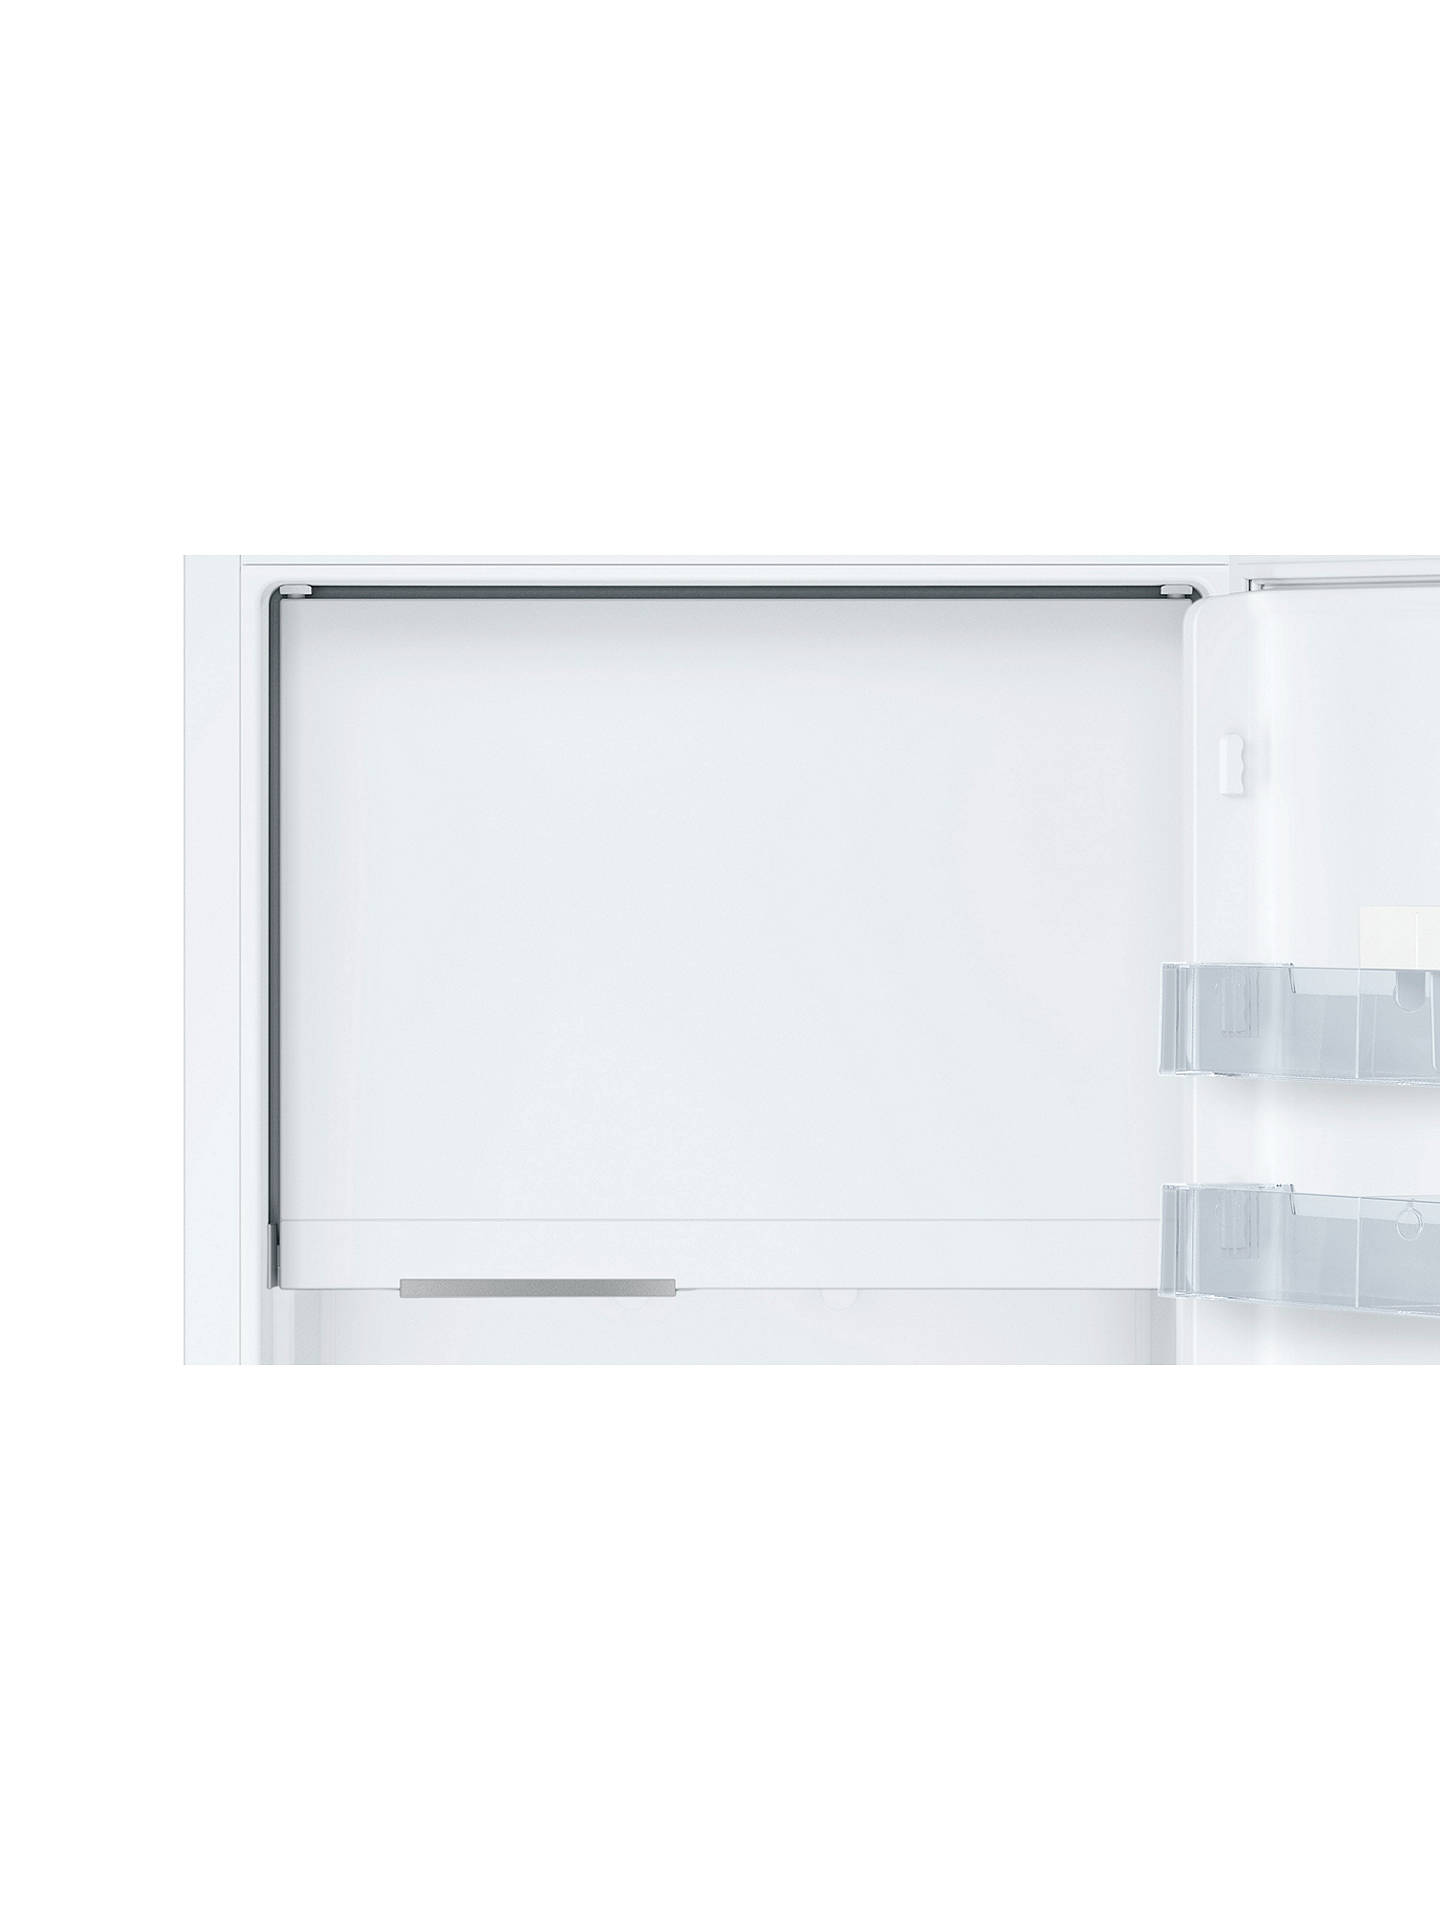 BuyNeff KI2823F30G Integrated Fridge, A++ Energy Rating, Right-Hand Hinge, 56cm Wide, White Online at johnlewis.com